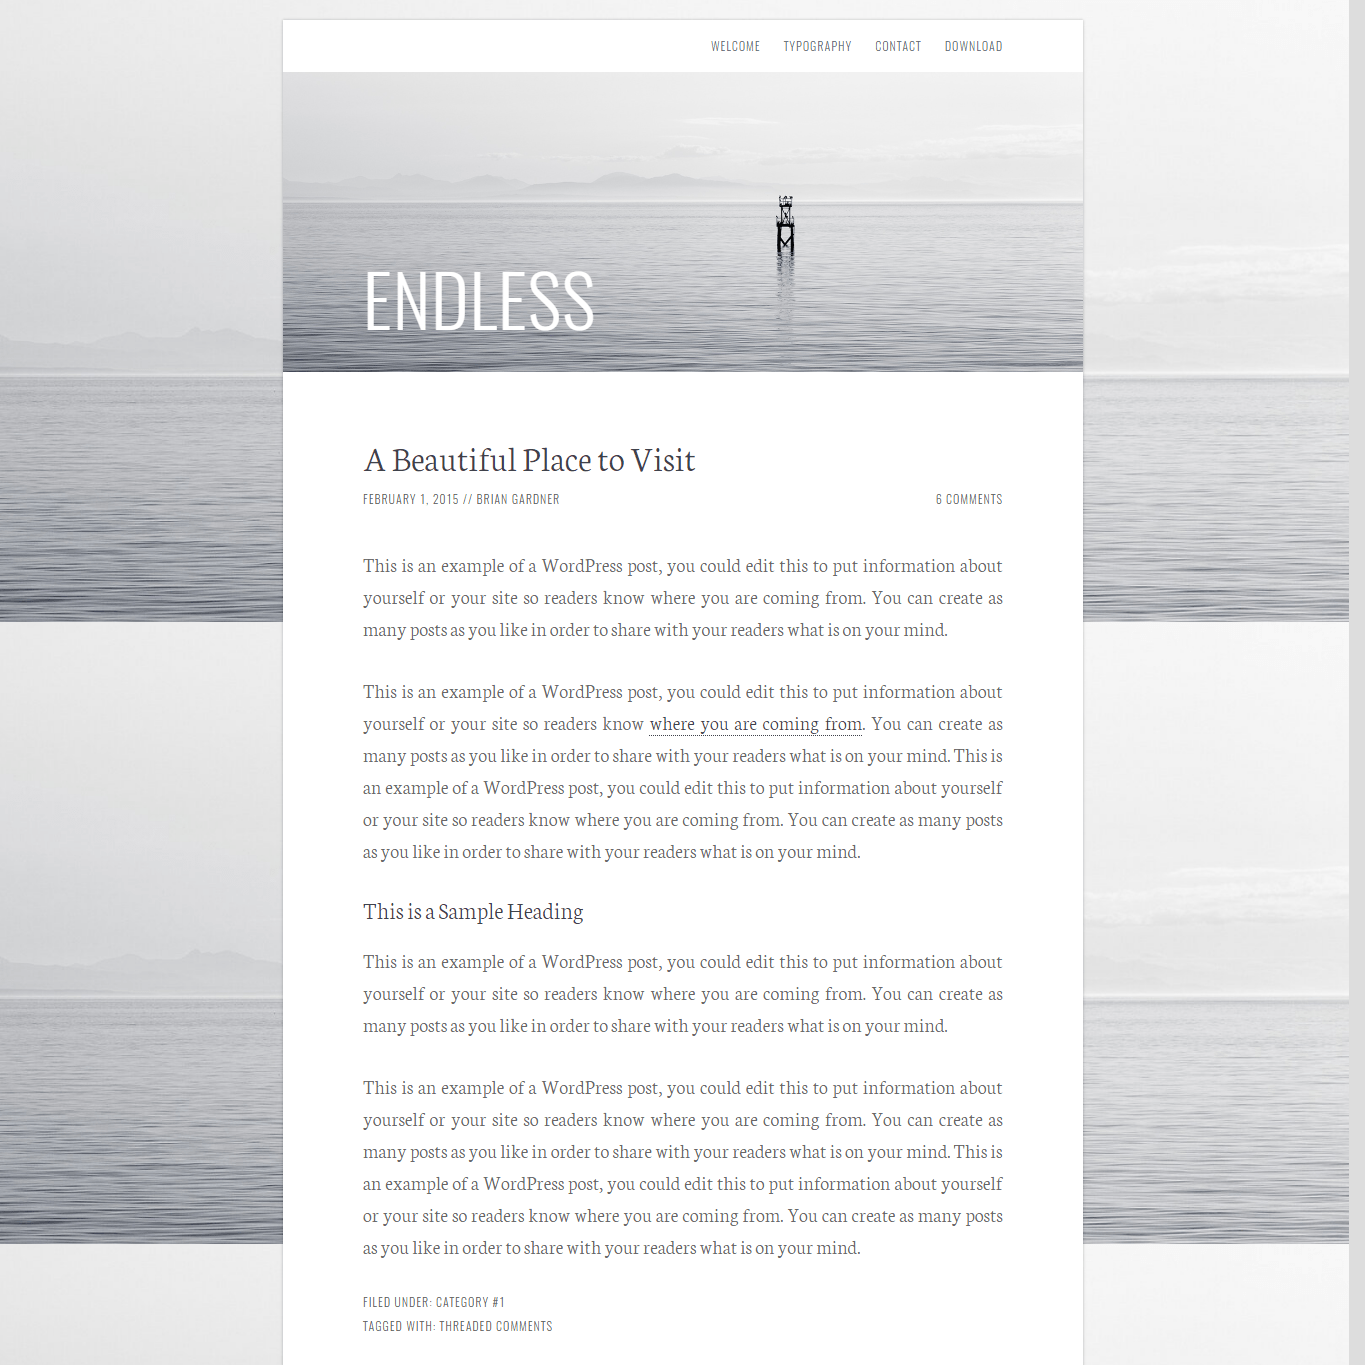 Get a free website with Endless by Brian Gardner on Talenthost